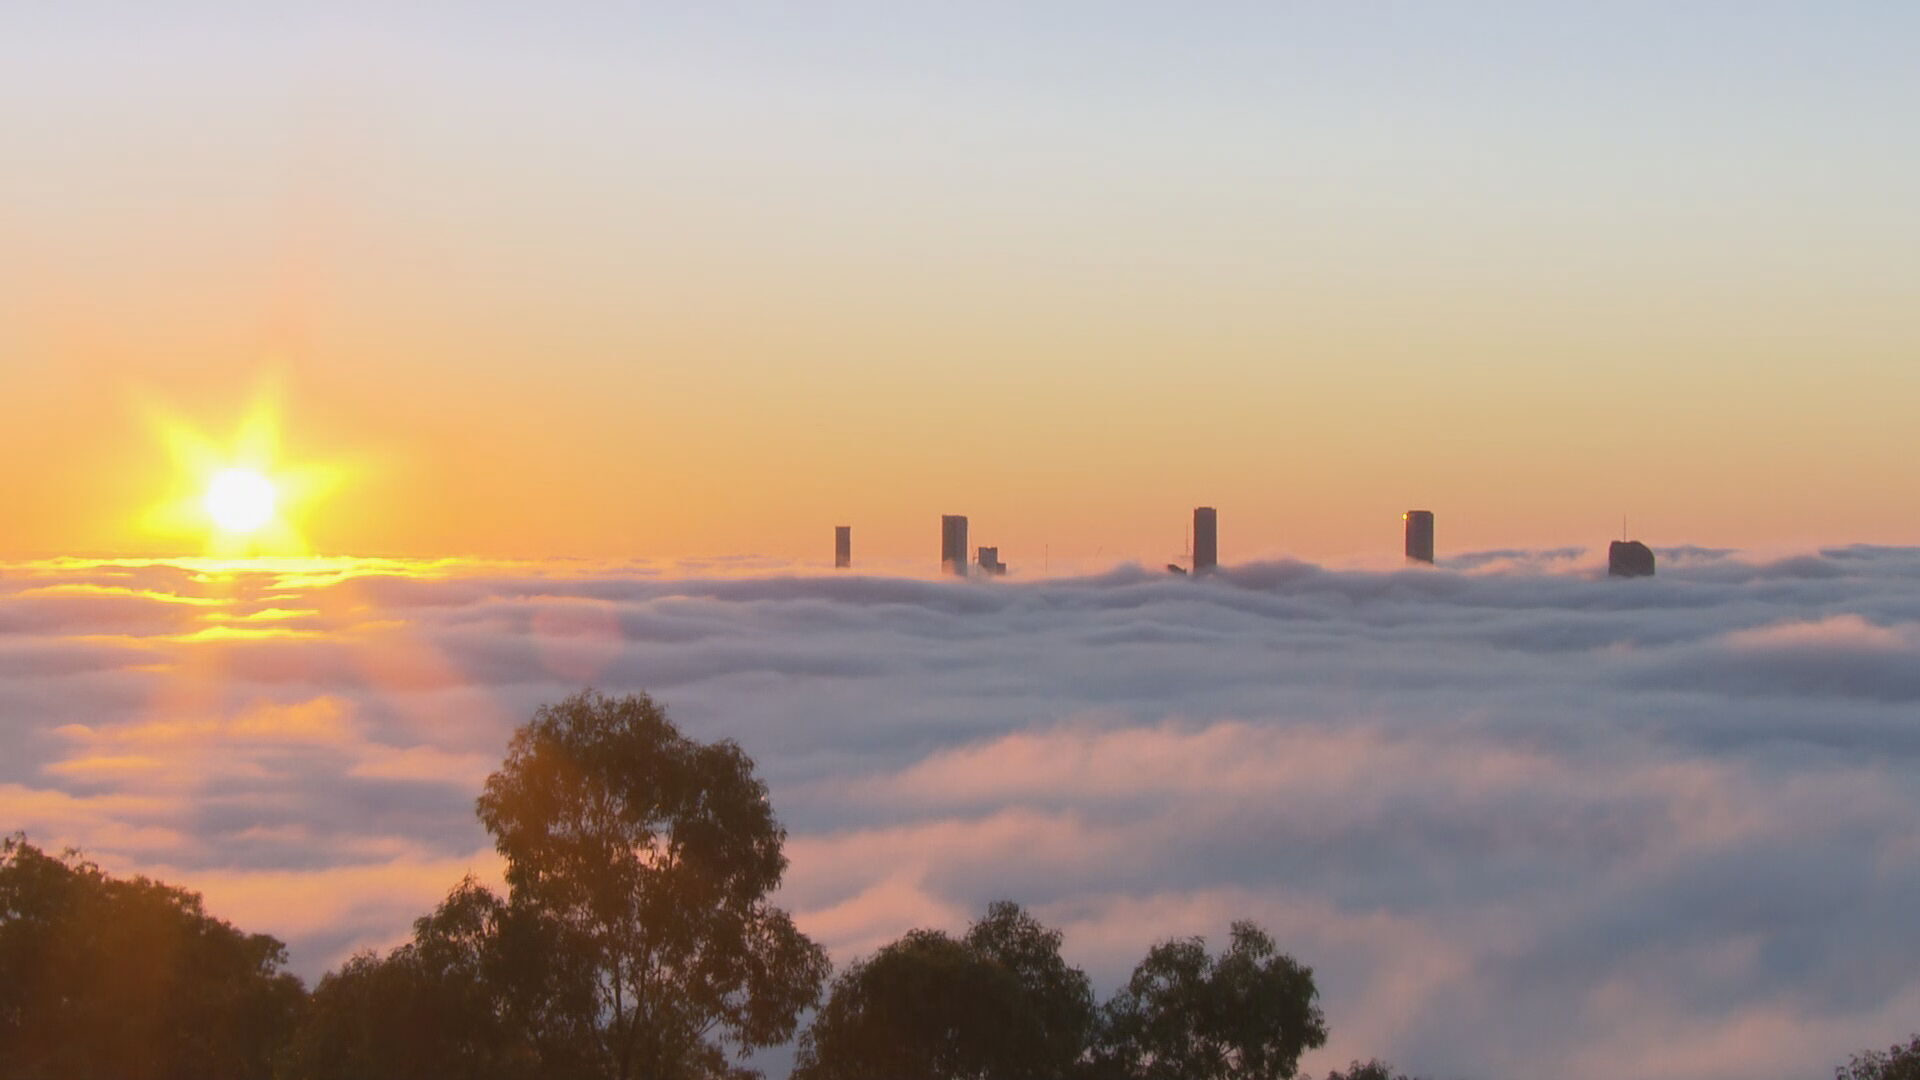 Thick layer of fog creating hazardous conditions for commuters